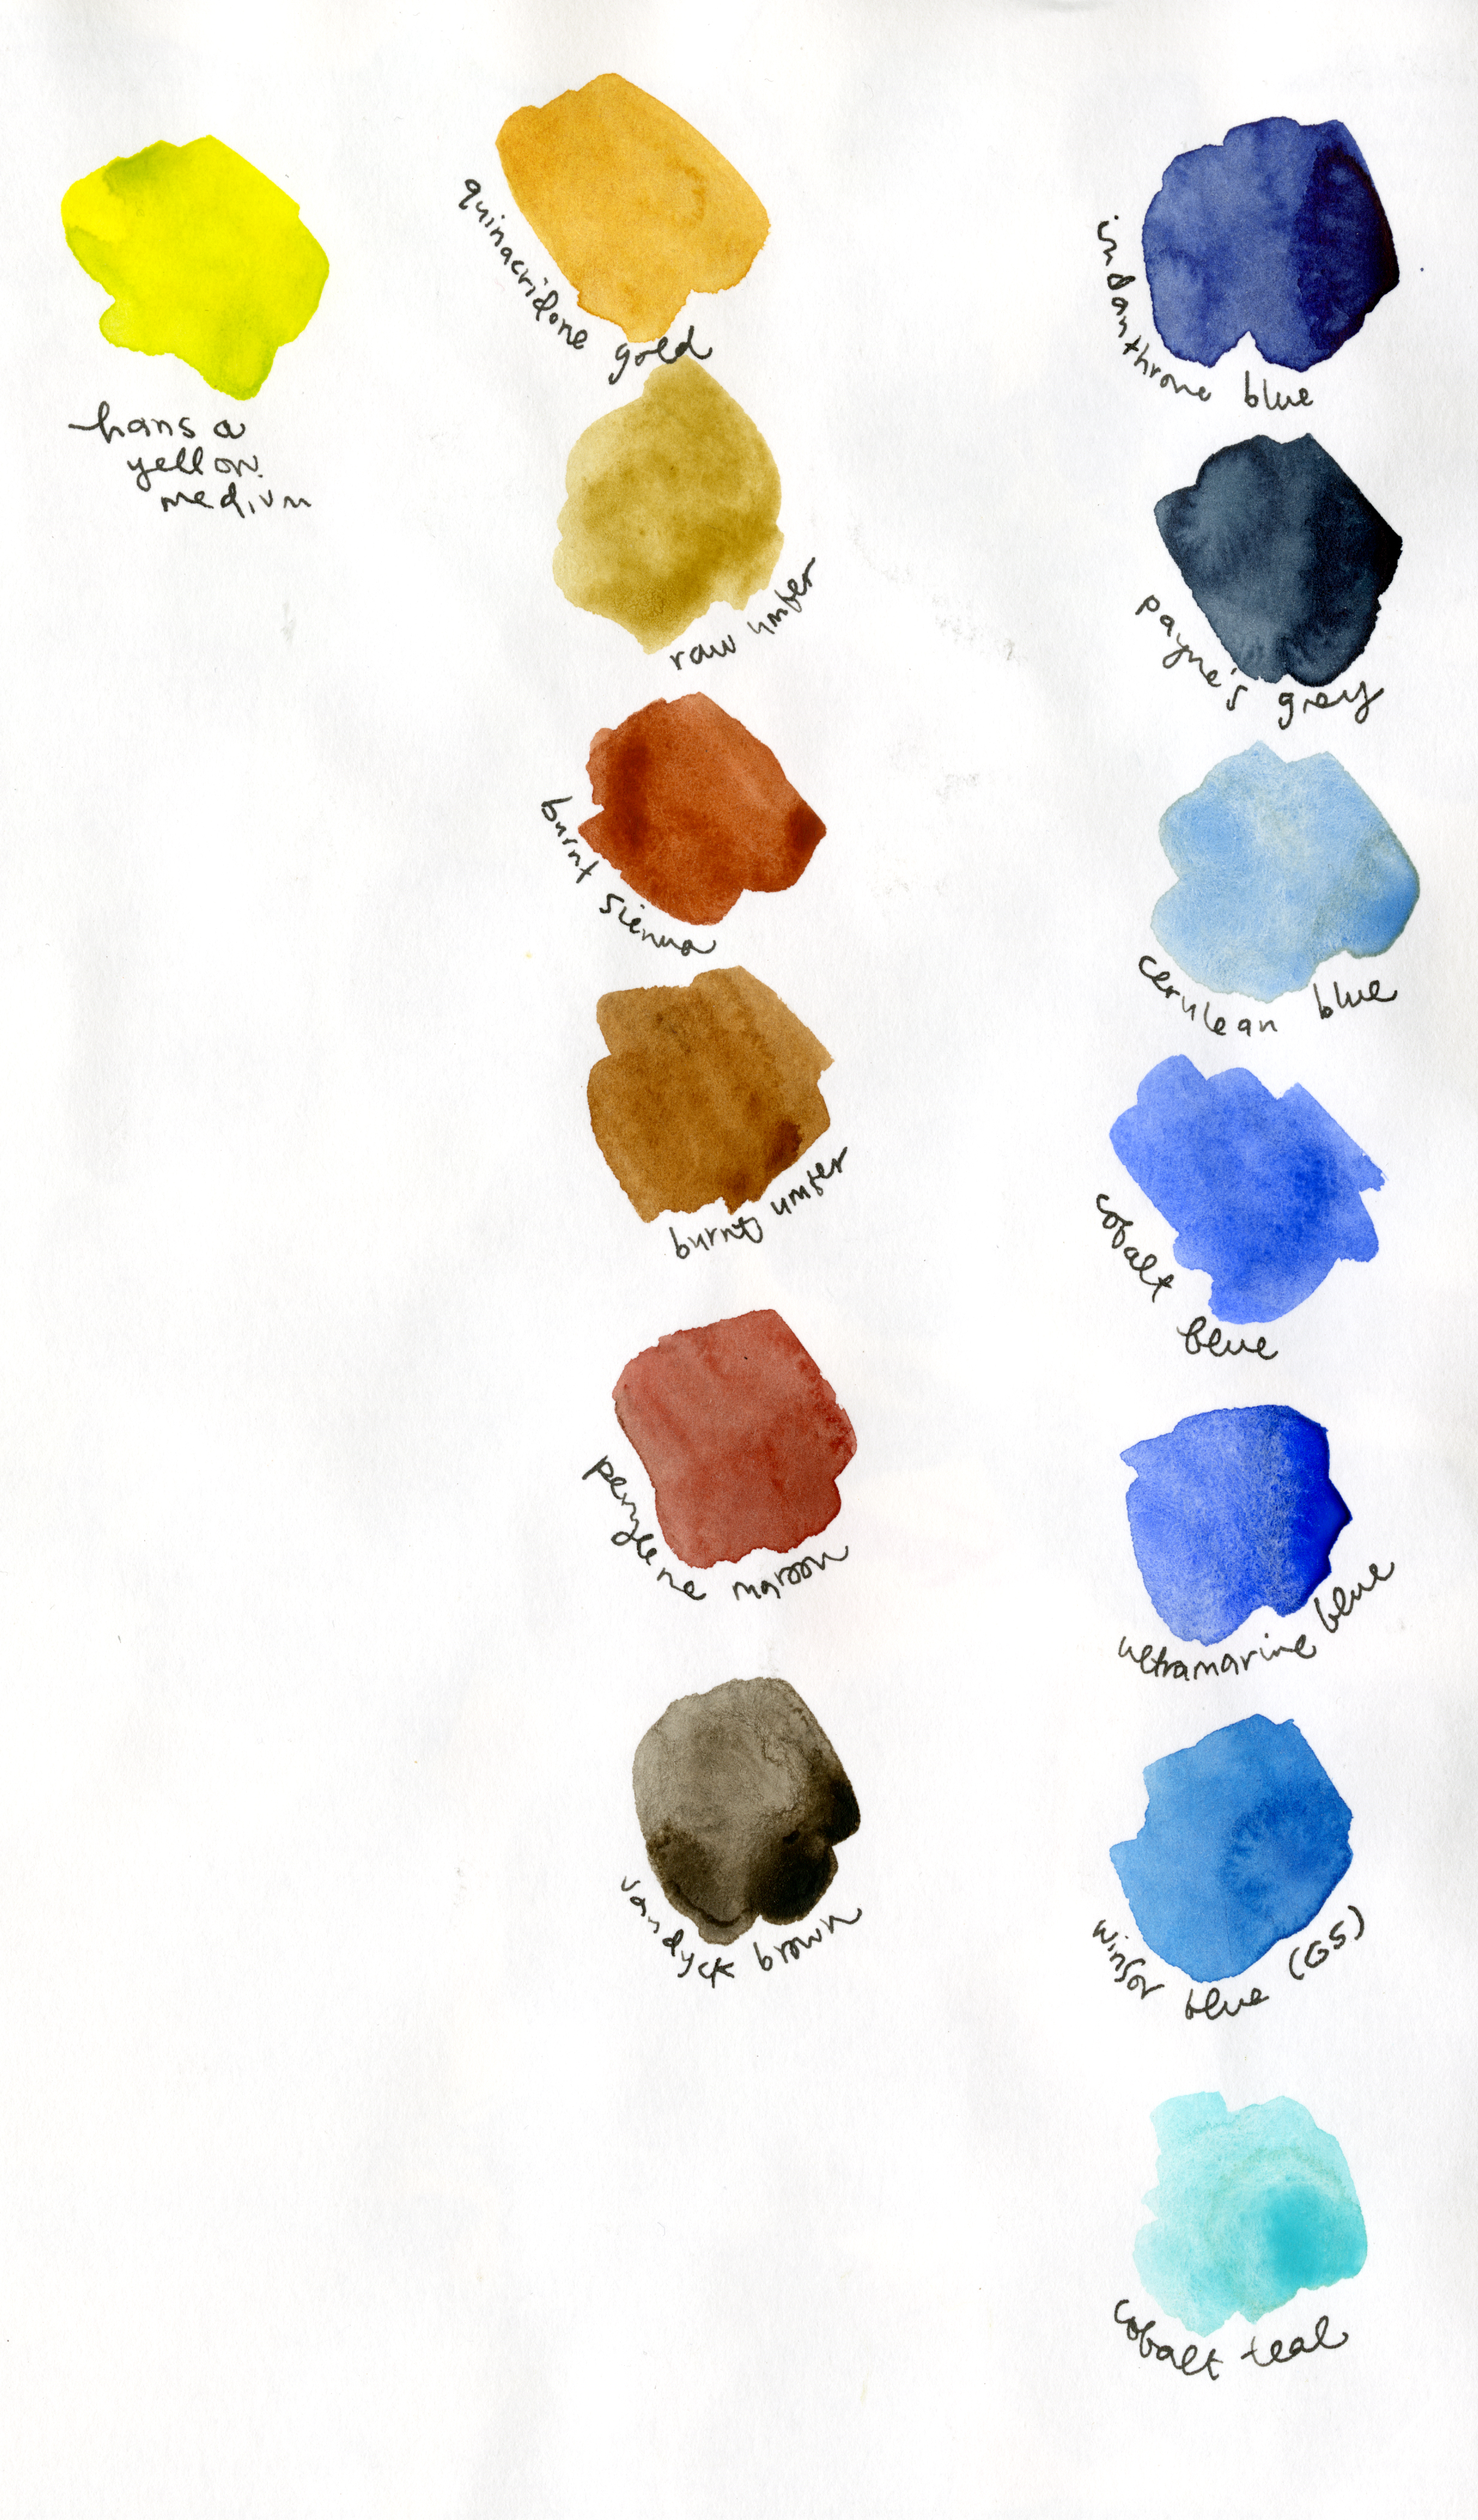 This was my ACTUAL palette for this book. Since it's set in the forest there are looooots of greens, which means lots of blues and yellows. Not much red at all.